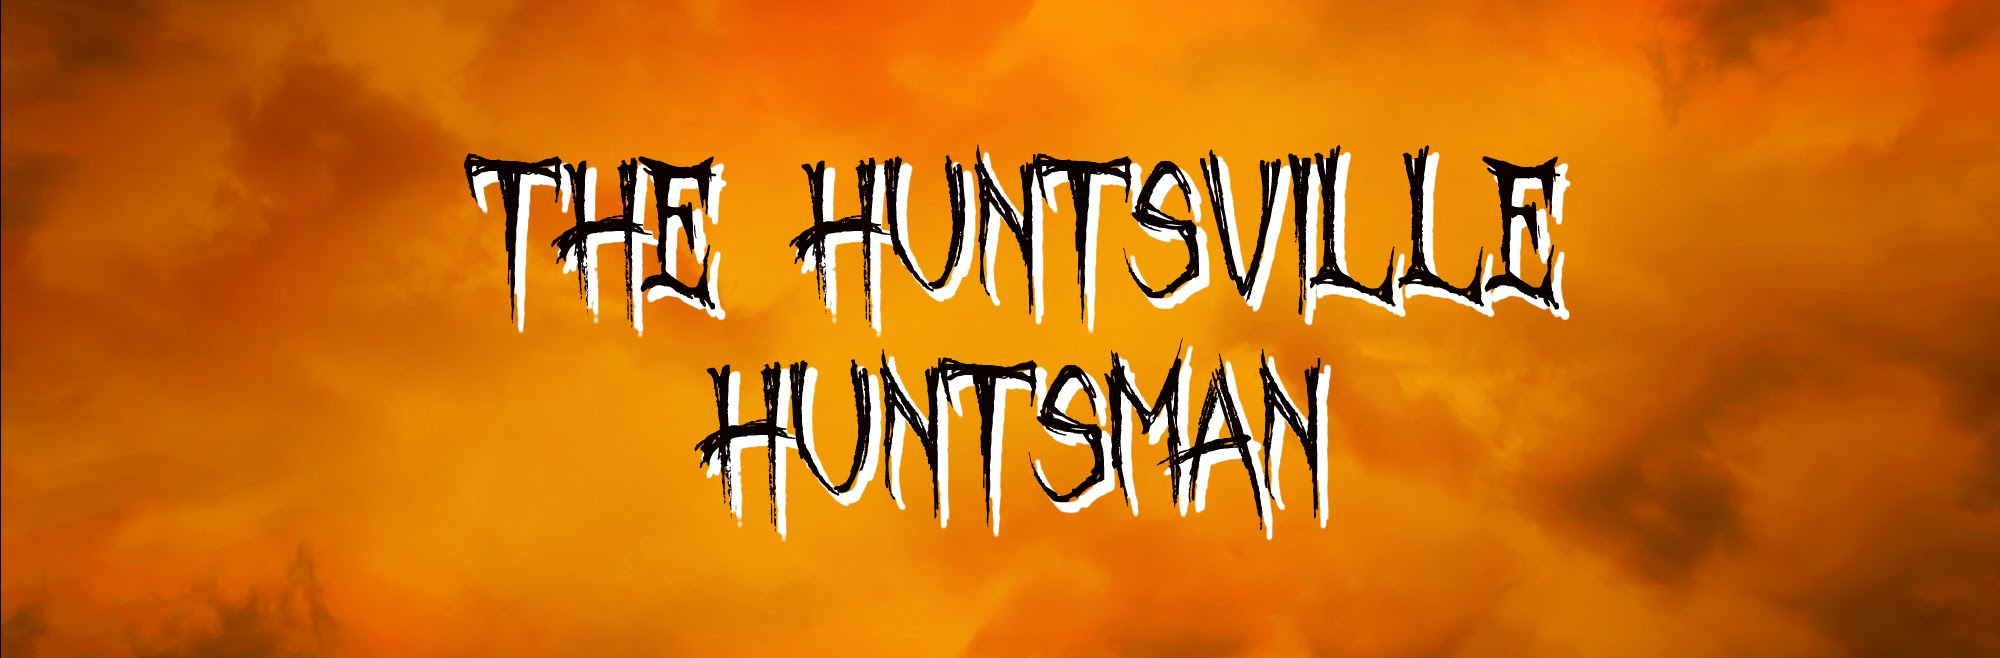 The Huntsville Huntsman button.jpg